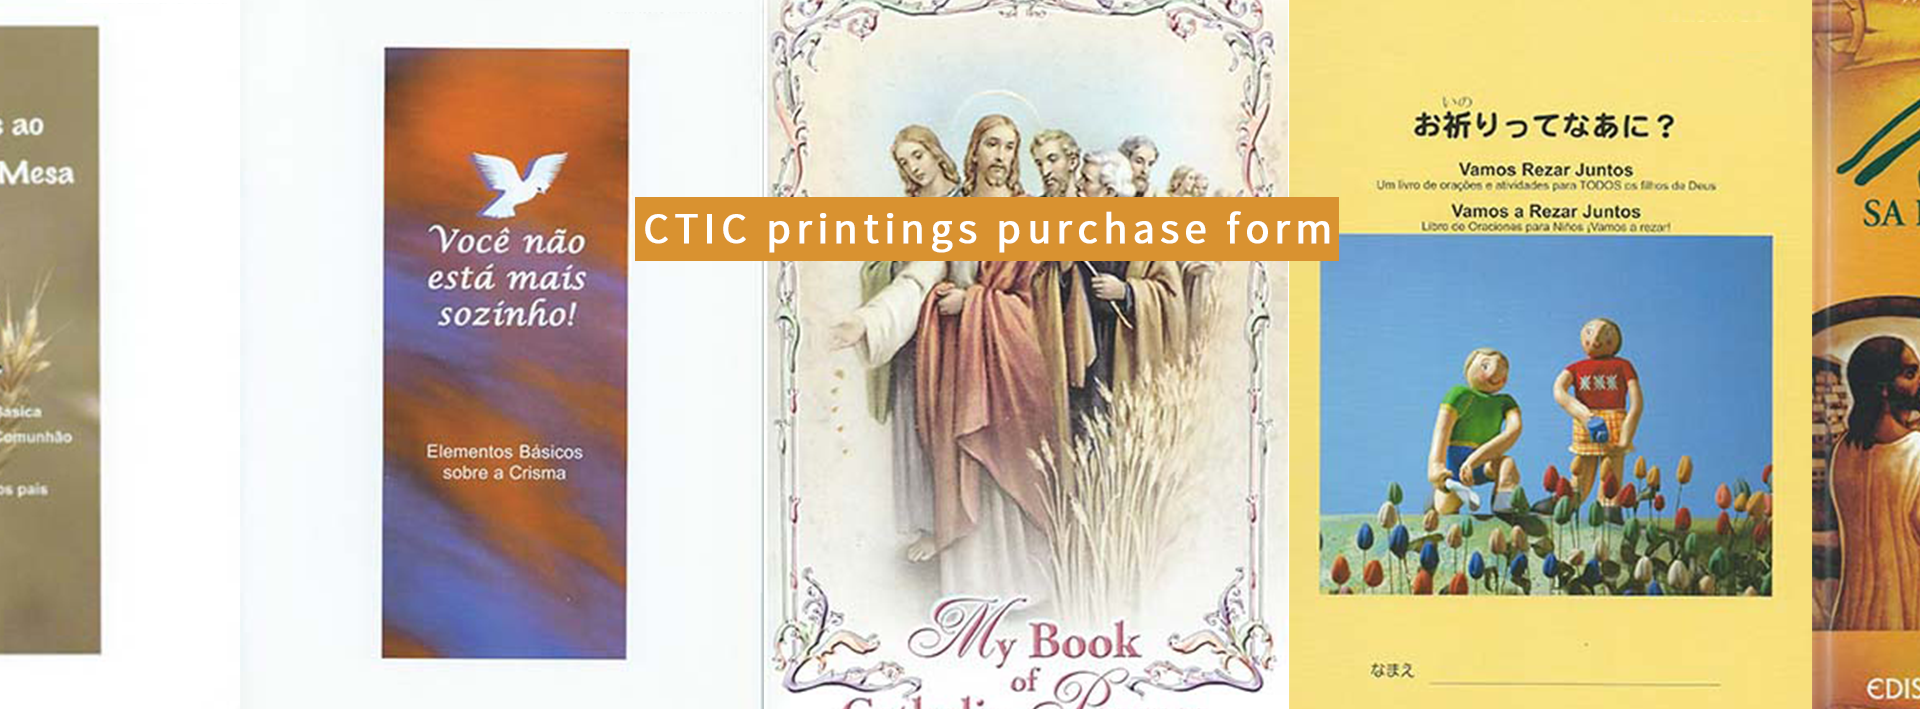 CTIC printings purchase form